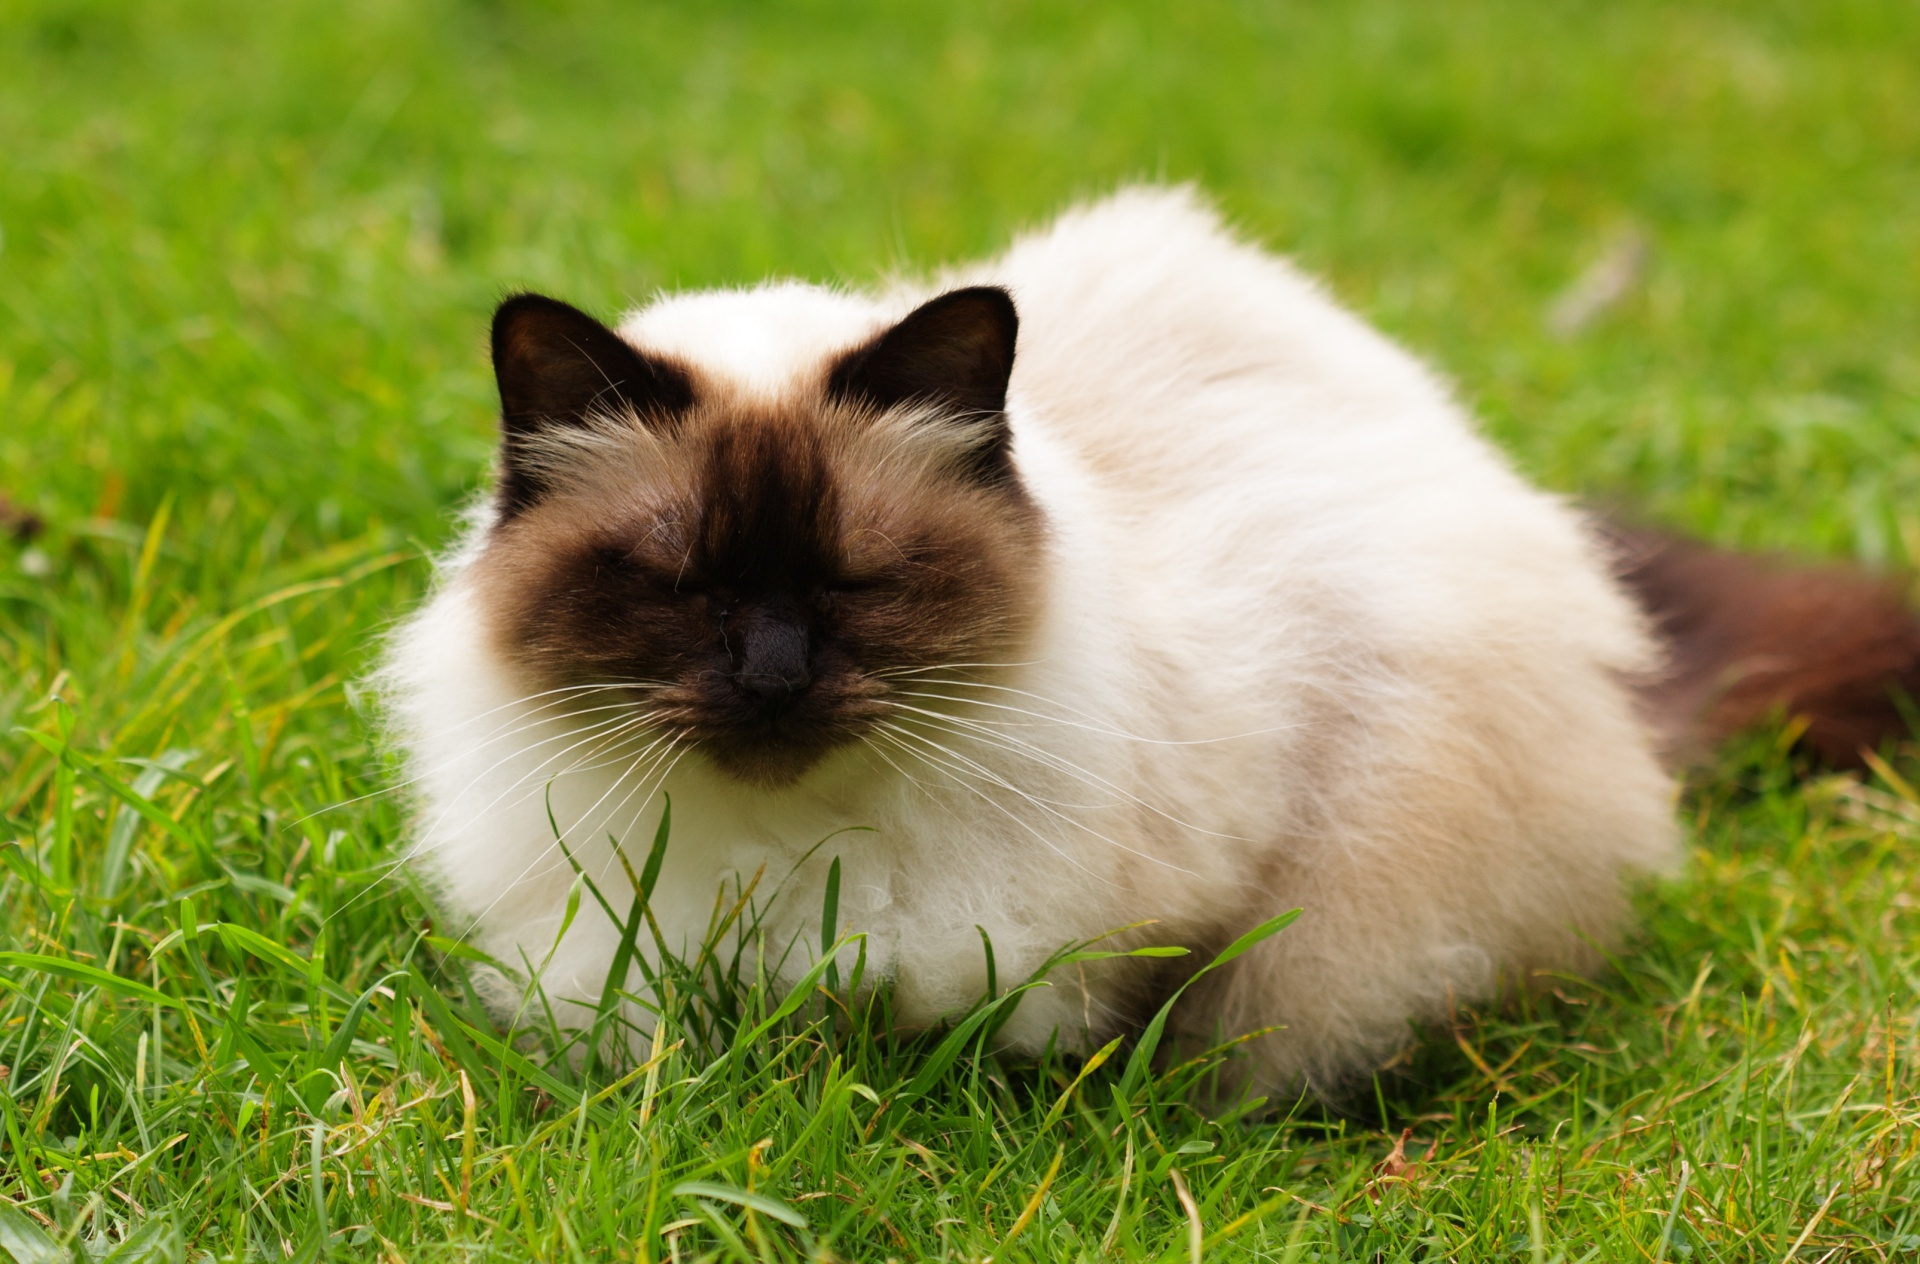 himalayan pet cat in India